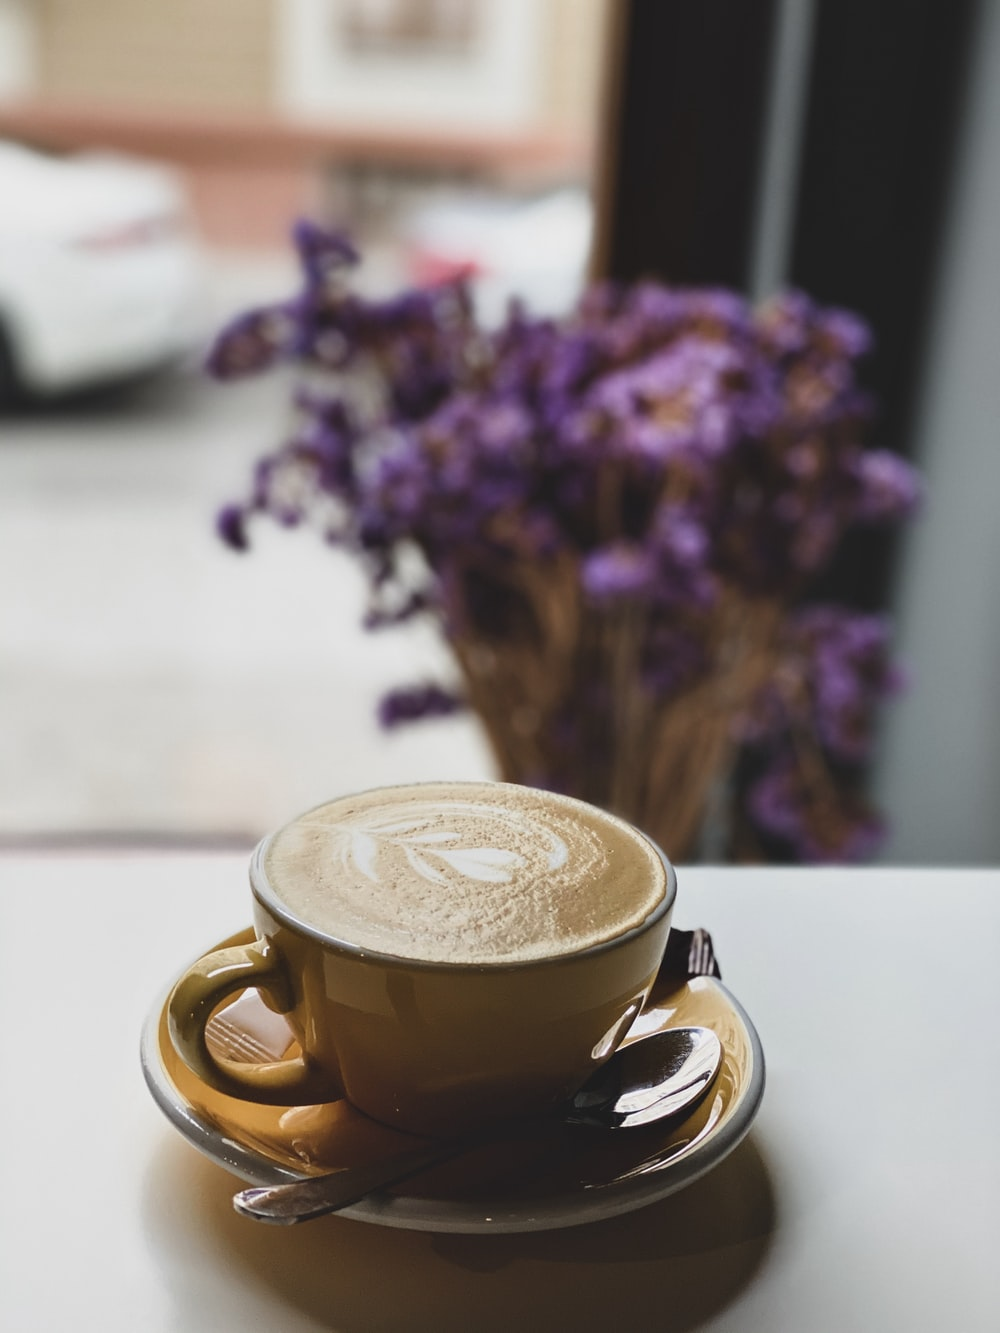 cappuccino in brown ceramic cup